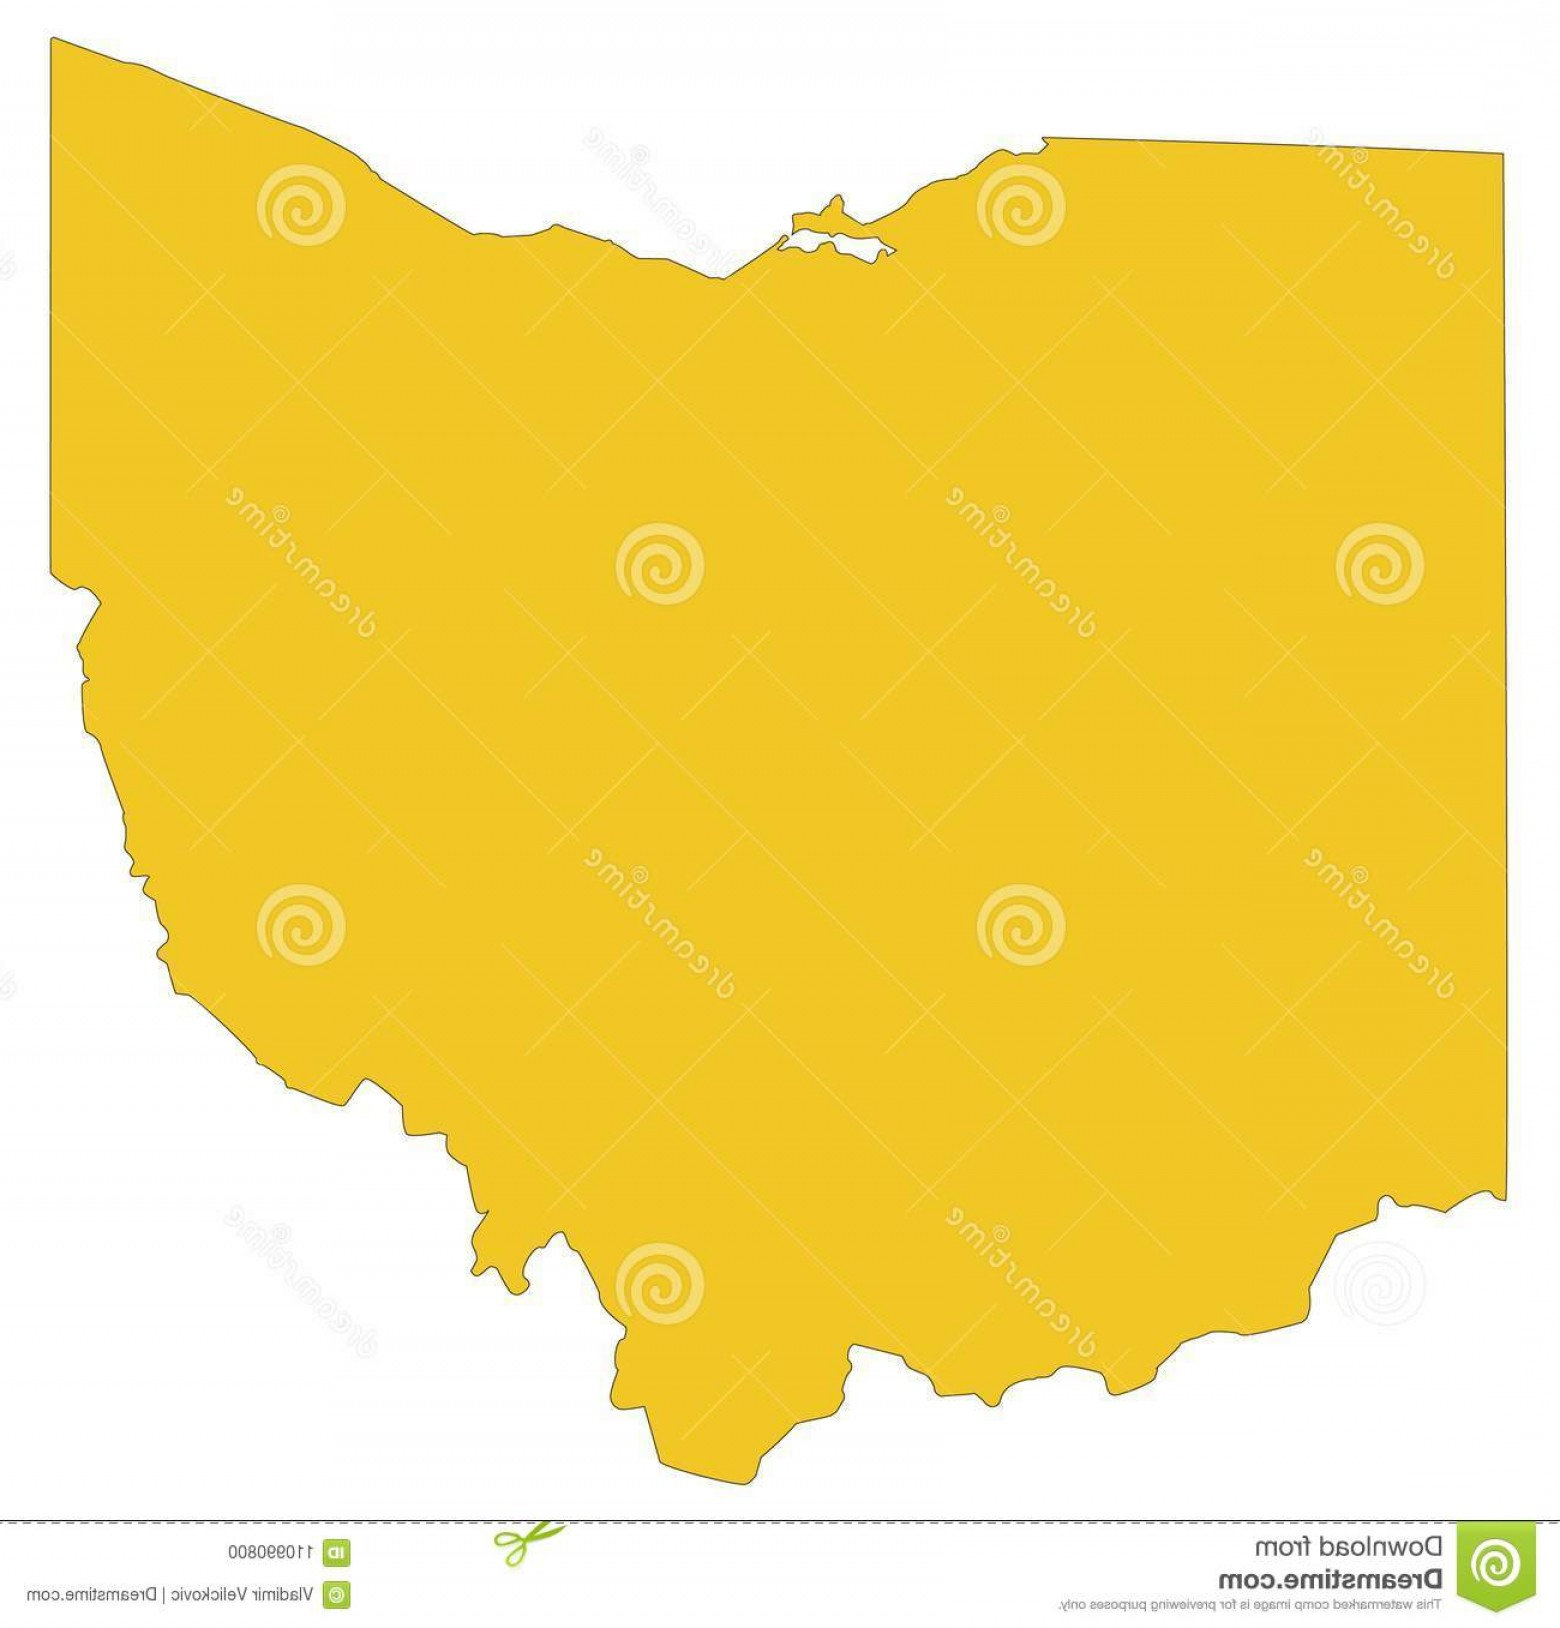 1560x1628 Vector File Ohio Map Midwestern State Great Lakes Region United